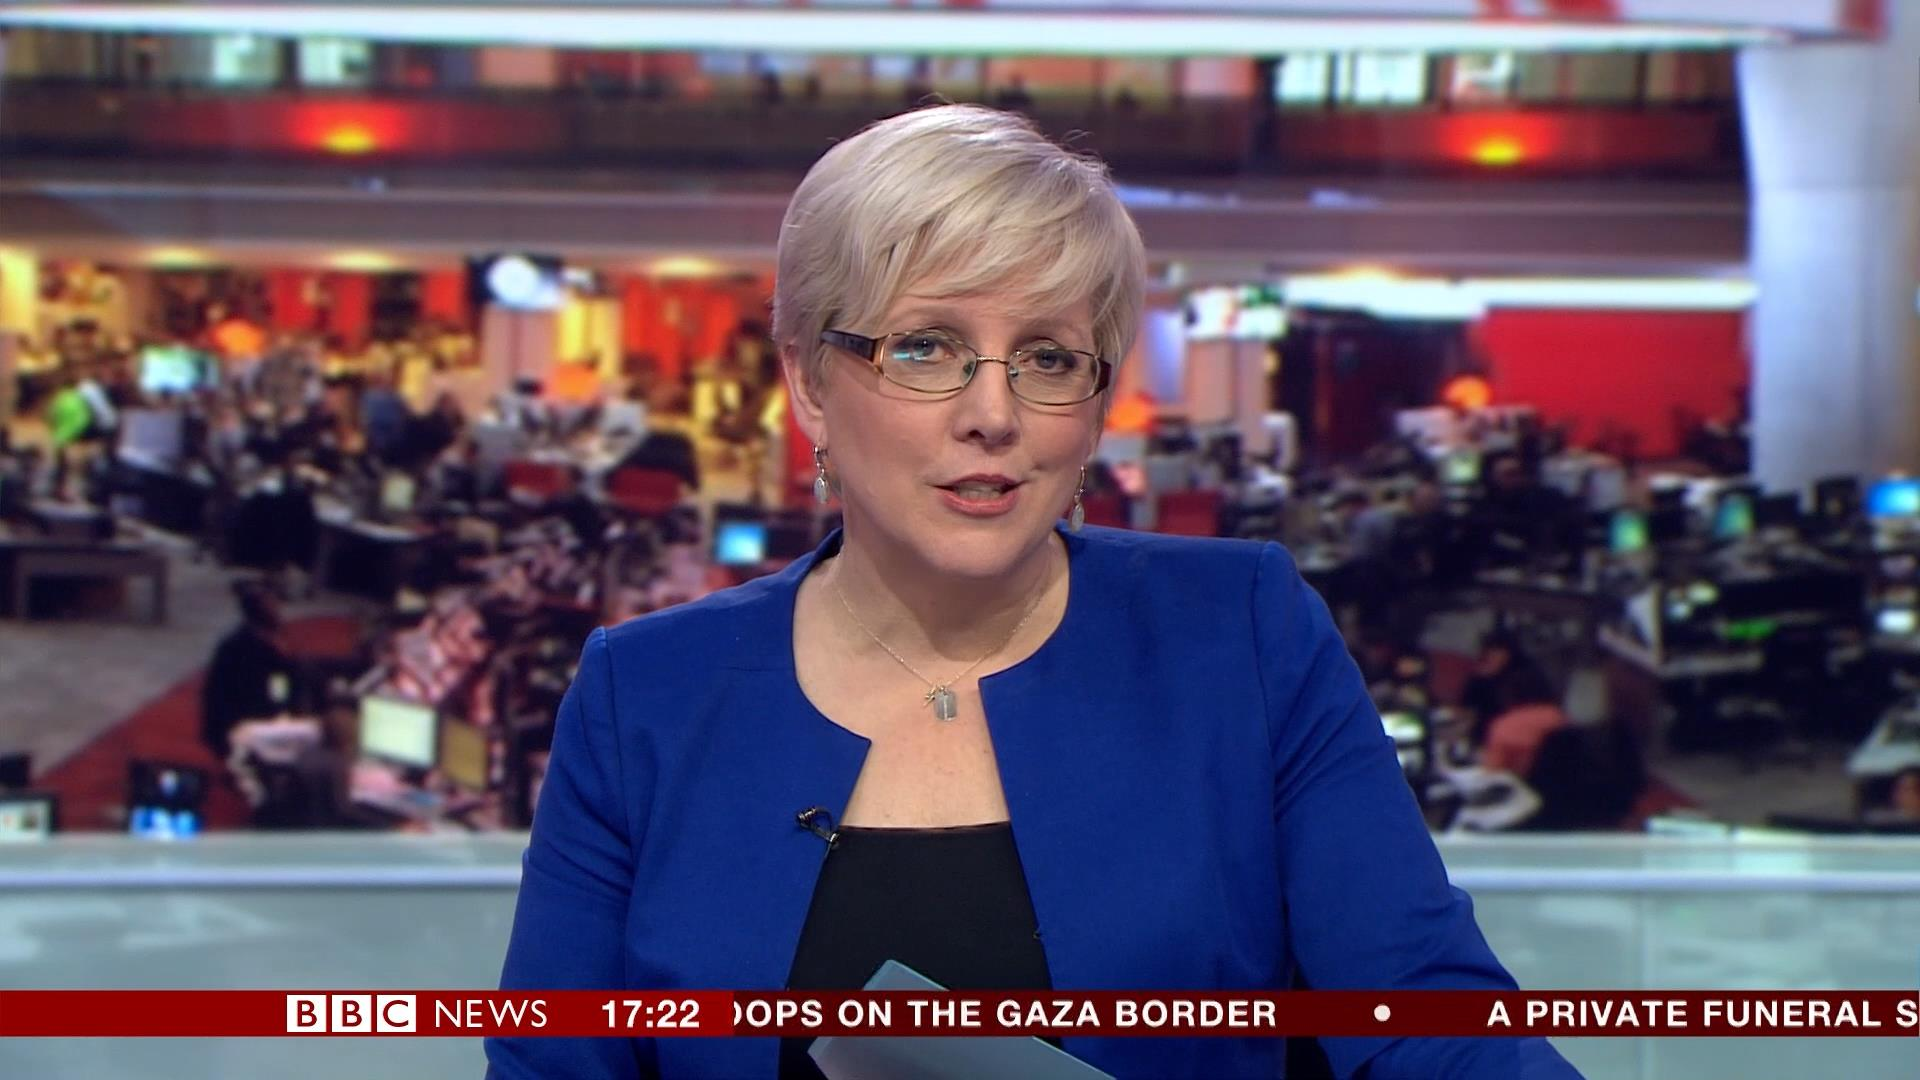 Carrie Gracie leaves BBC News